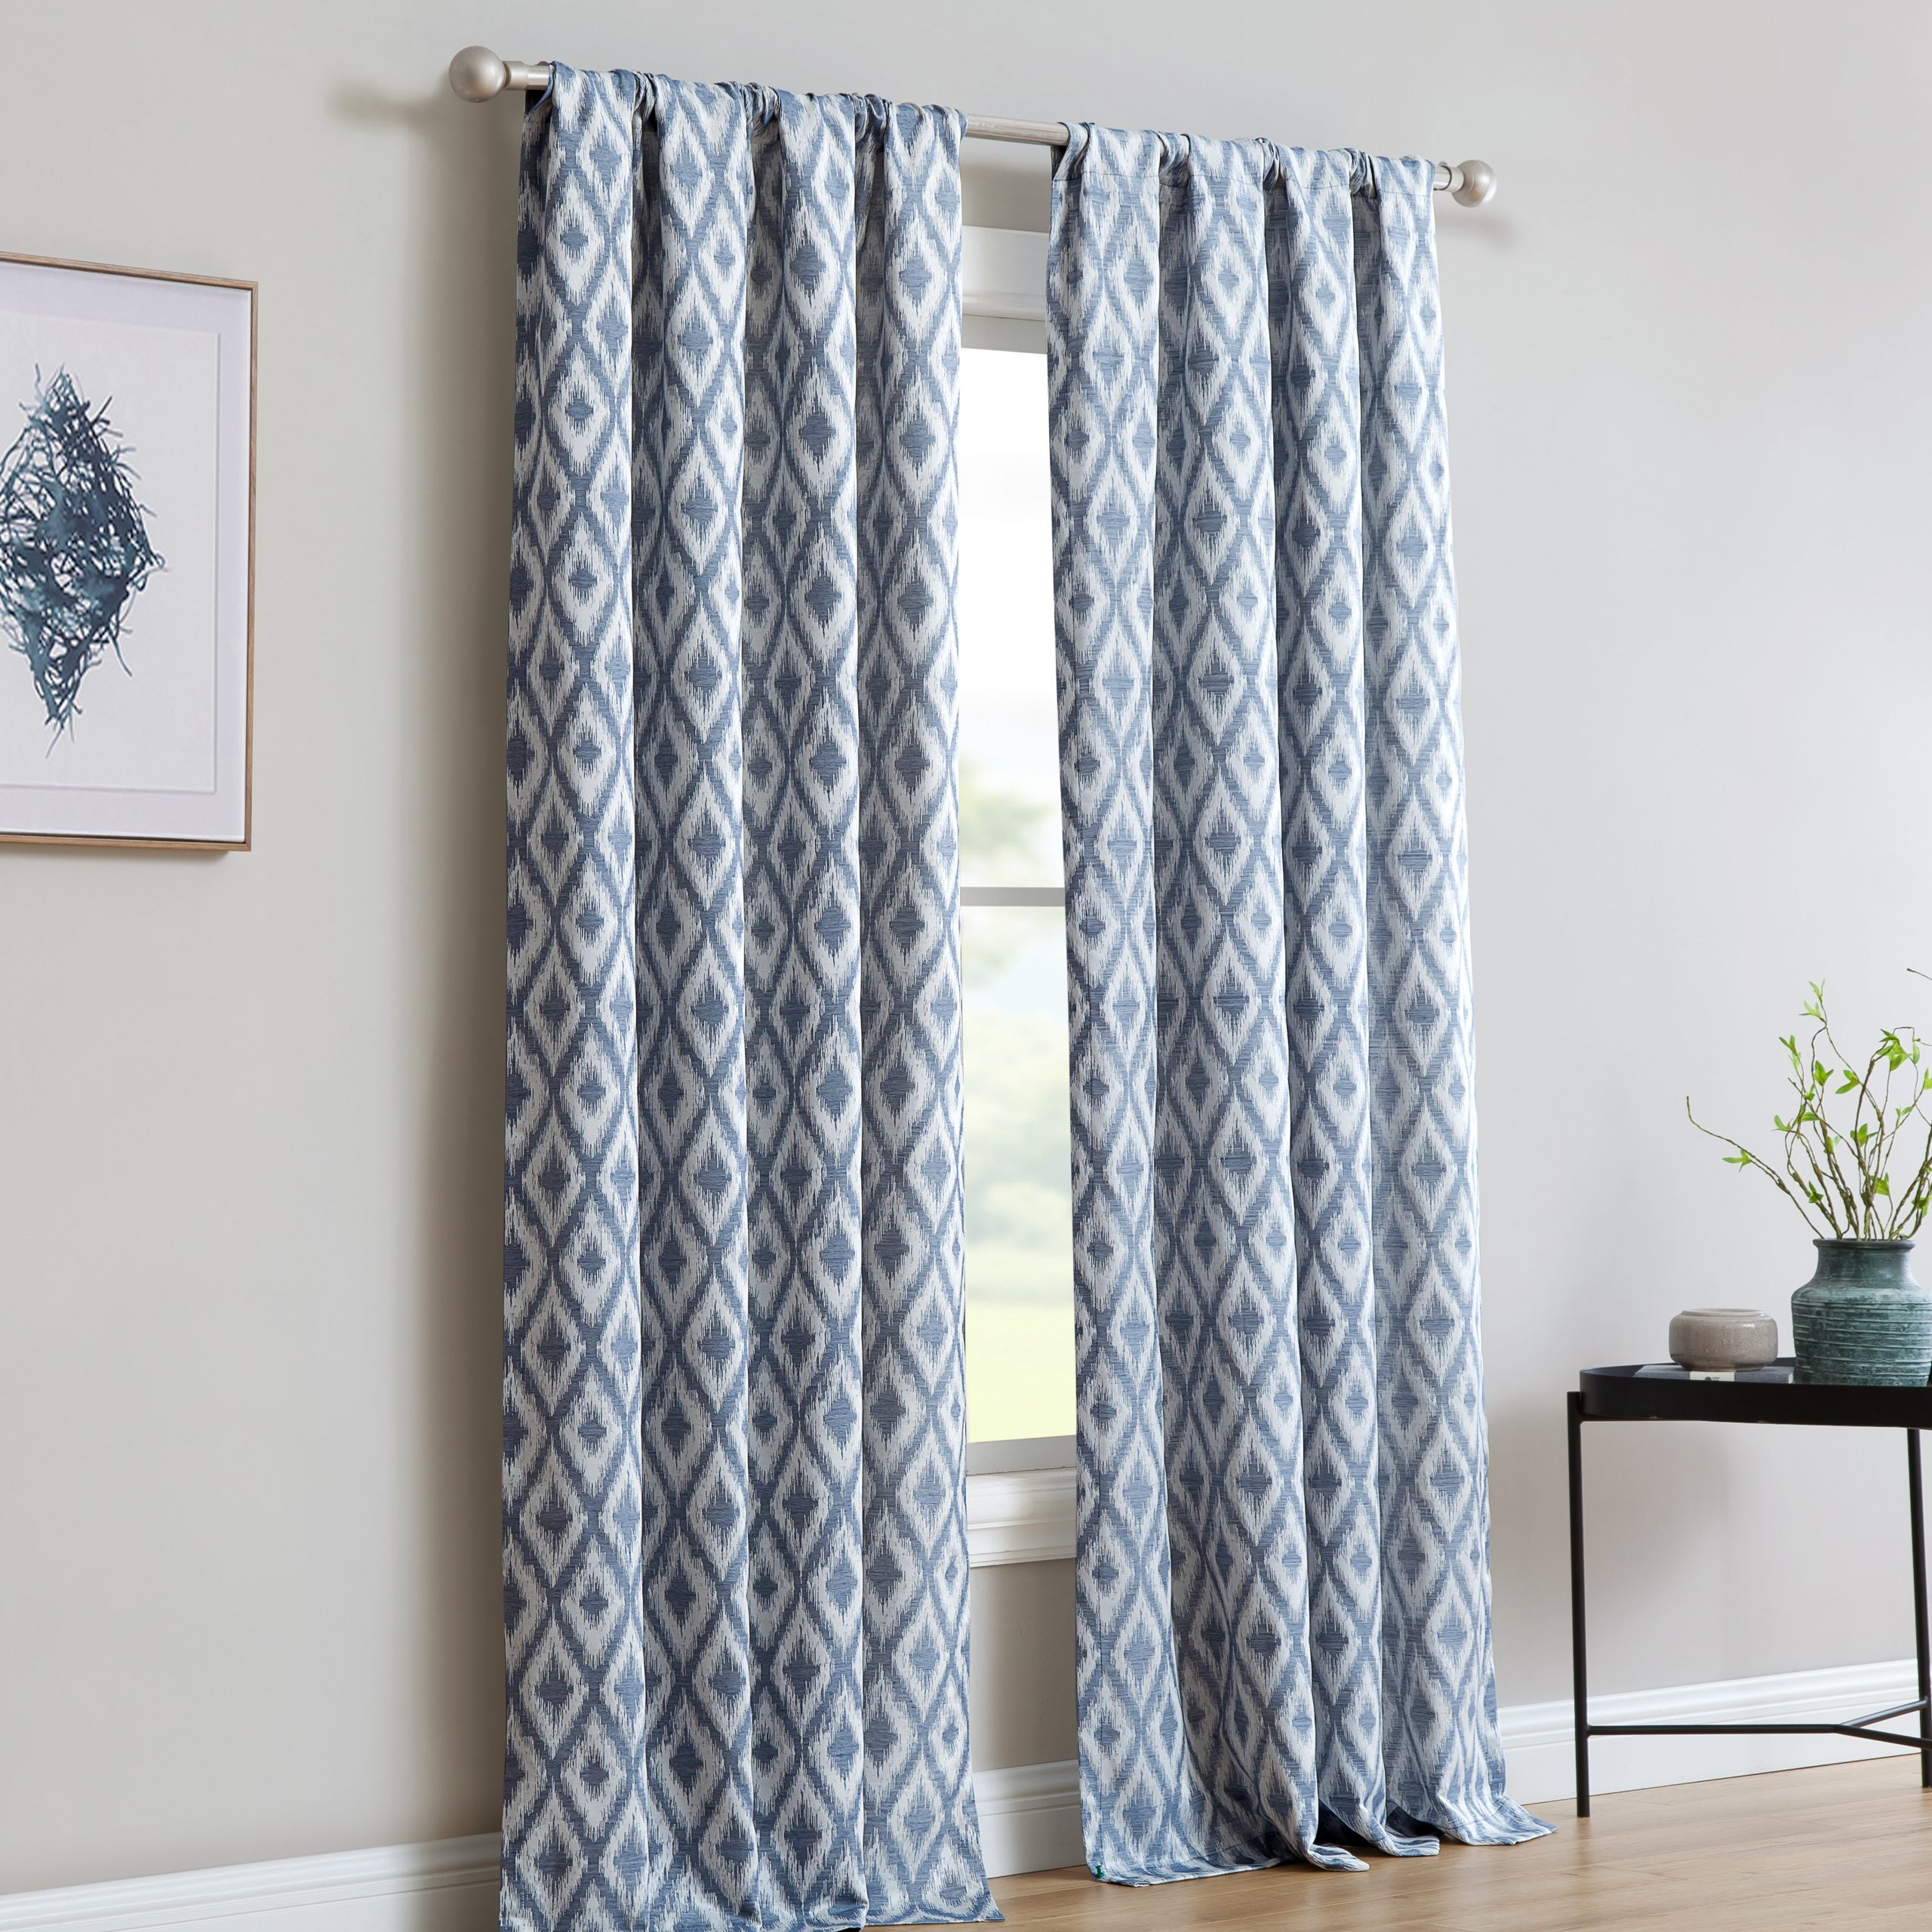 Most Recent Pottorff Jacquard Window With Ikat Room Darkening Rod Pocket Single Curtain Panel Intended For Ikat Blue Printed Cotton Curtain Panels (Gallery 19 of 20)